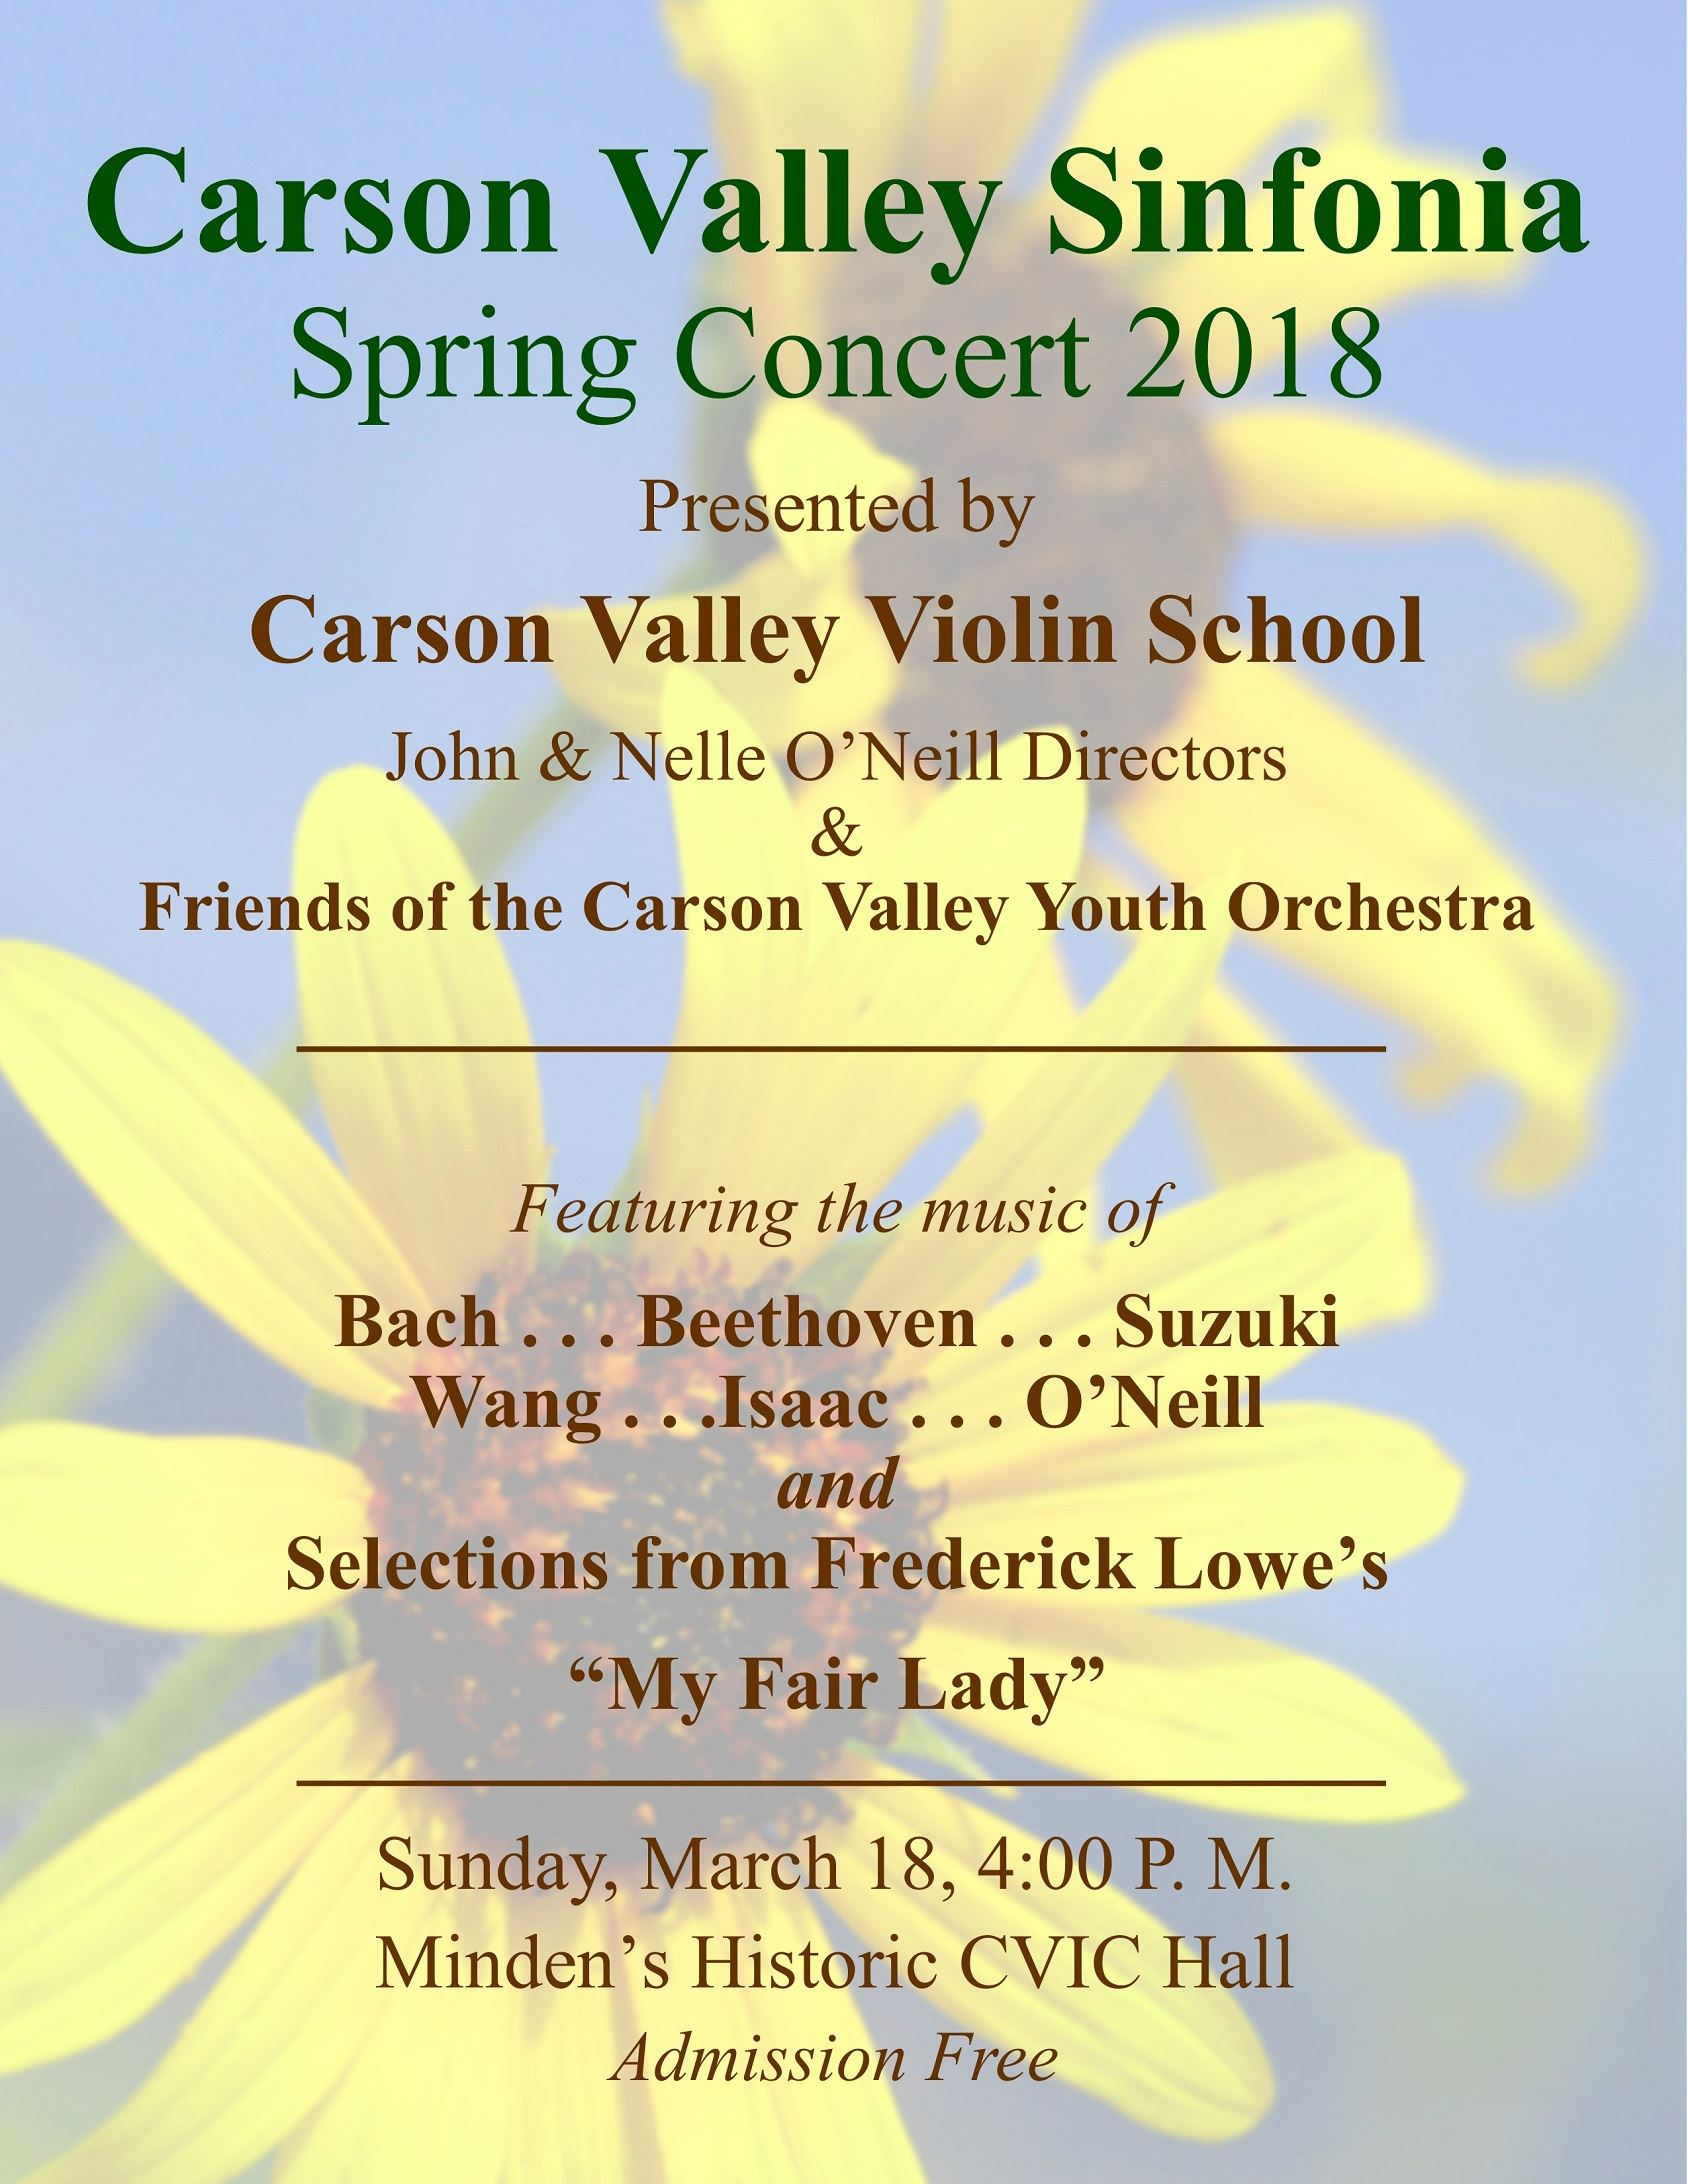 Carson Valley Sinfonia Spring Concert